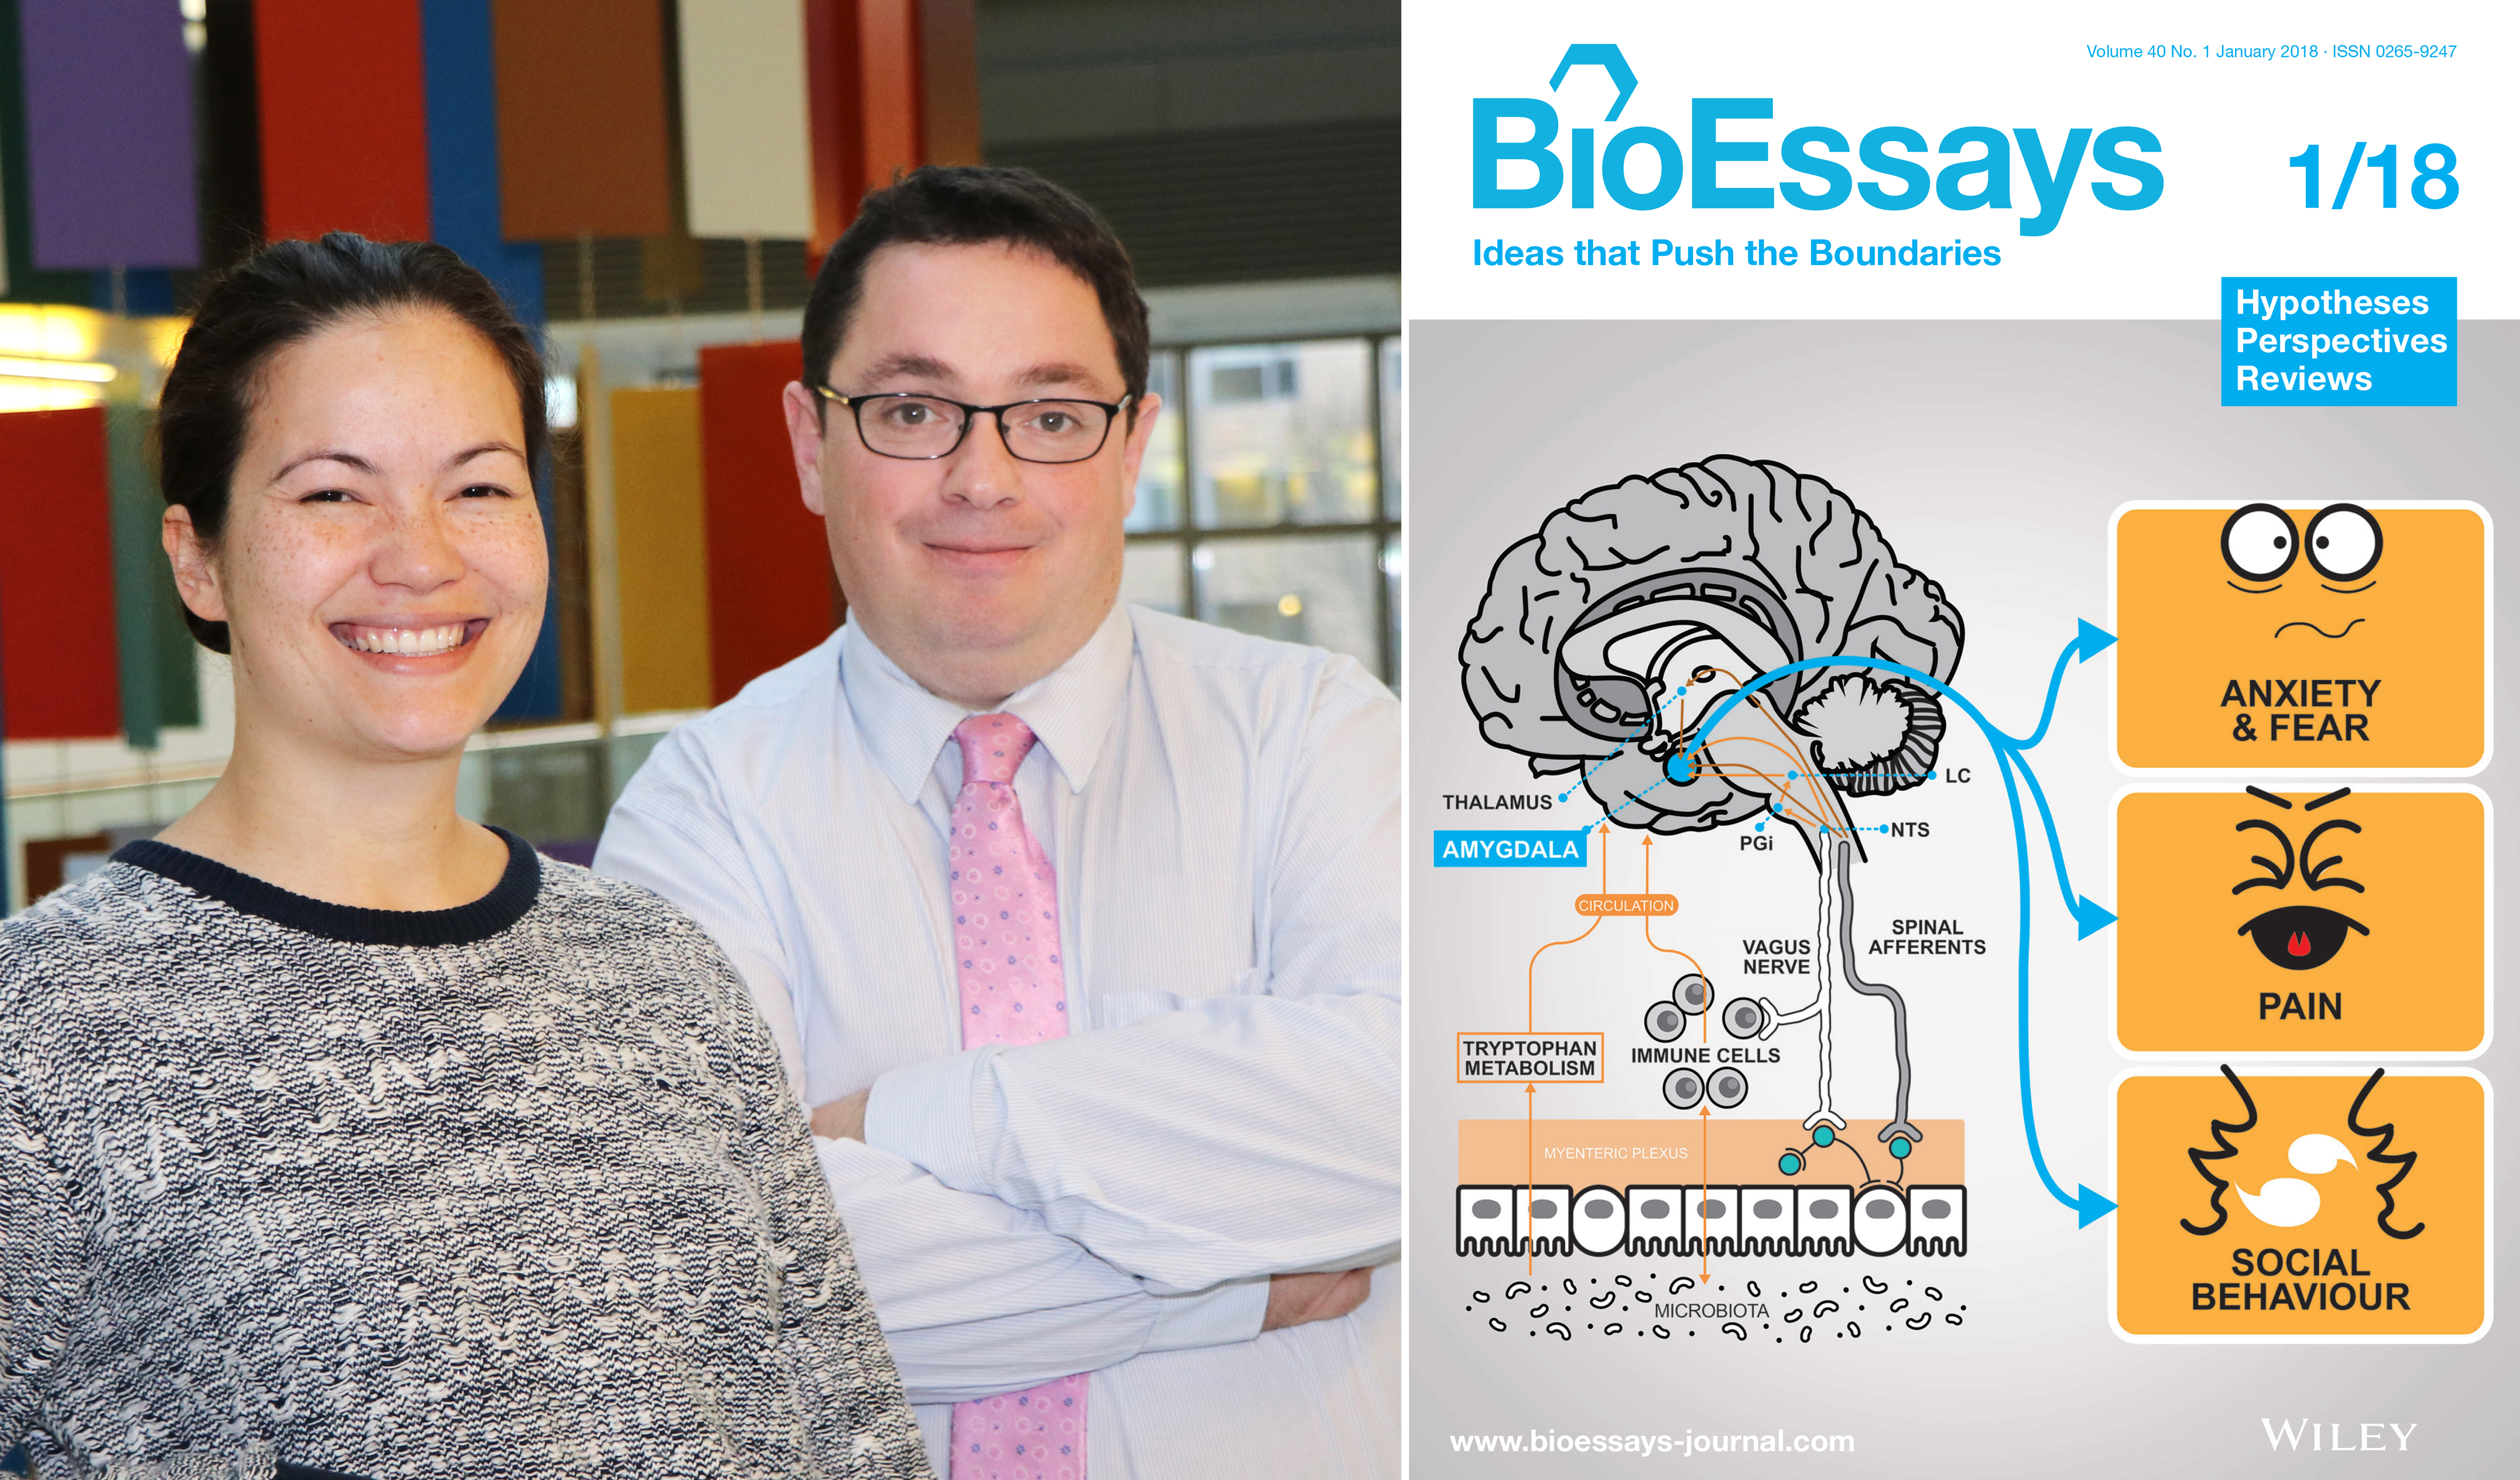 BioEssays cover features Cowan, Cryan article